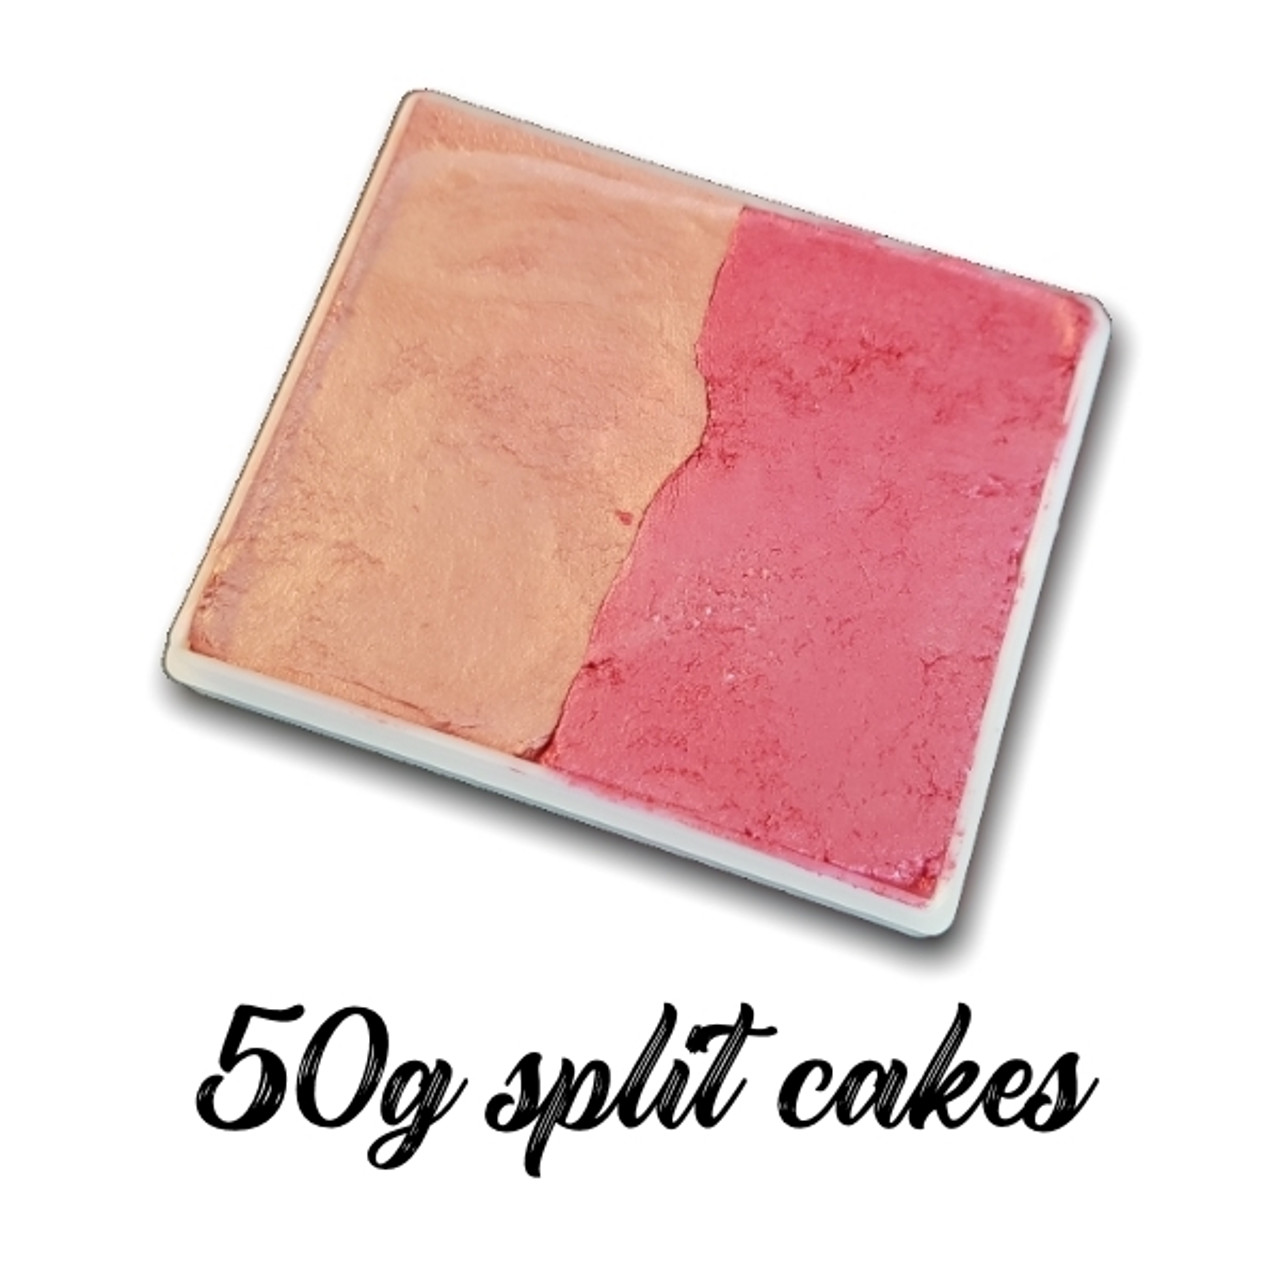 50g split cakes two colour